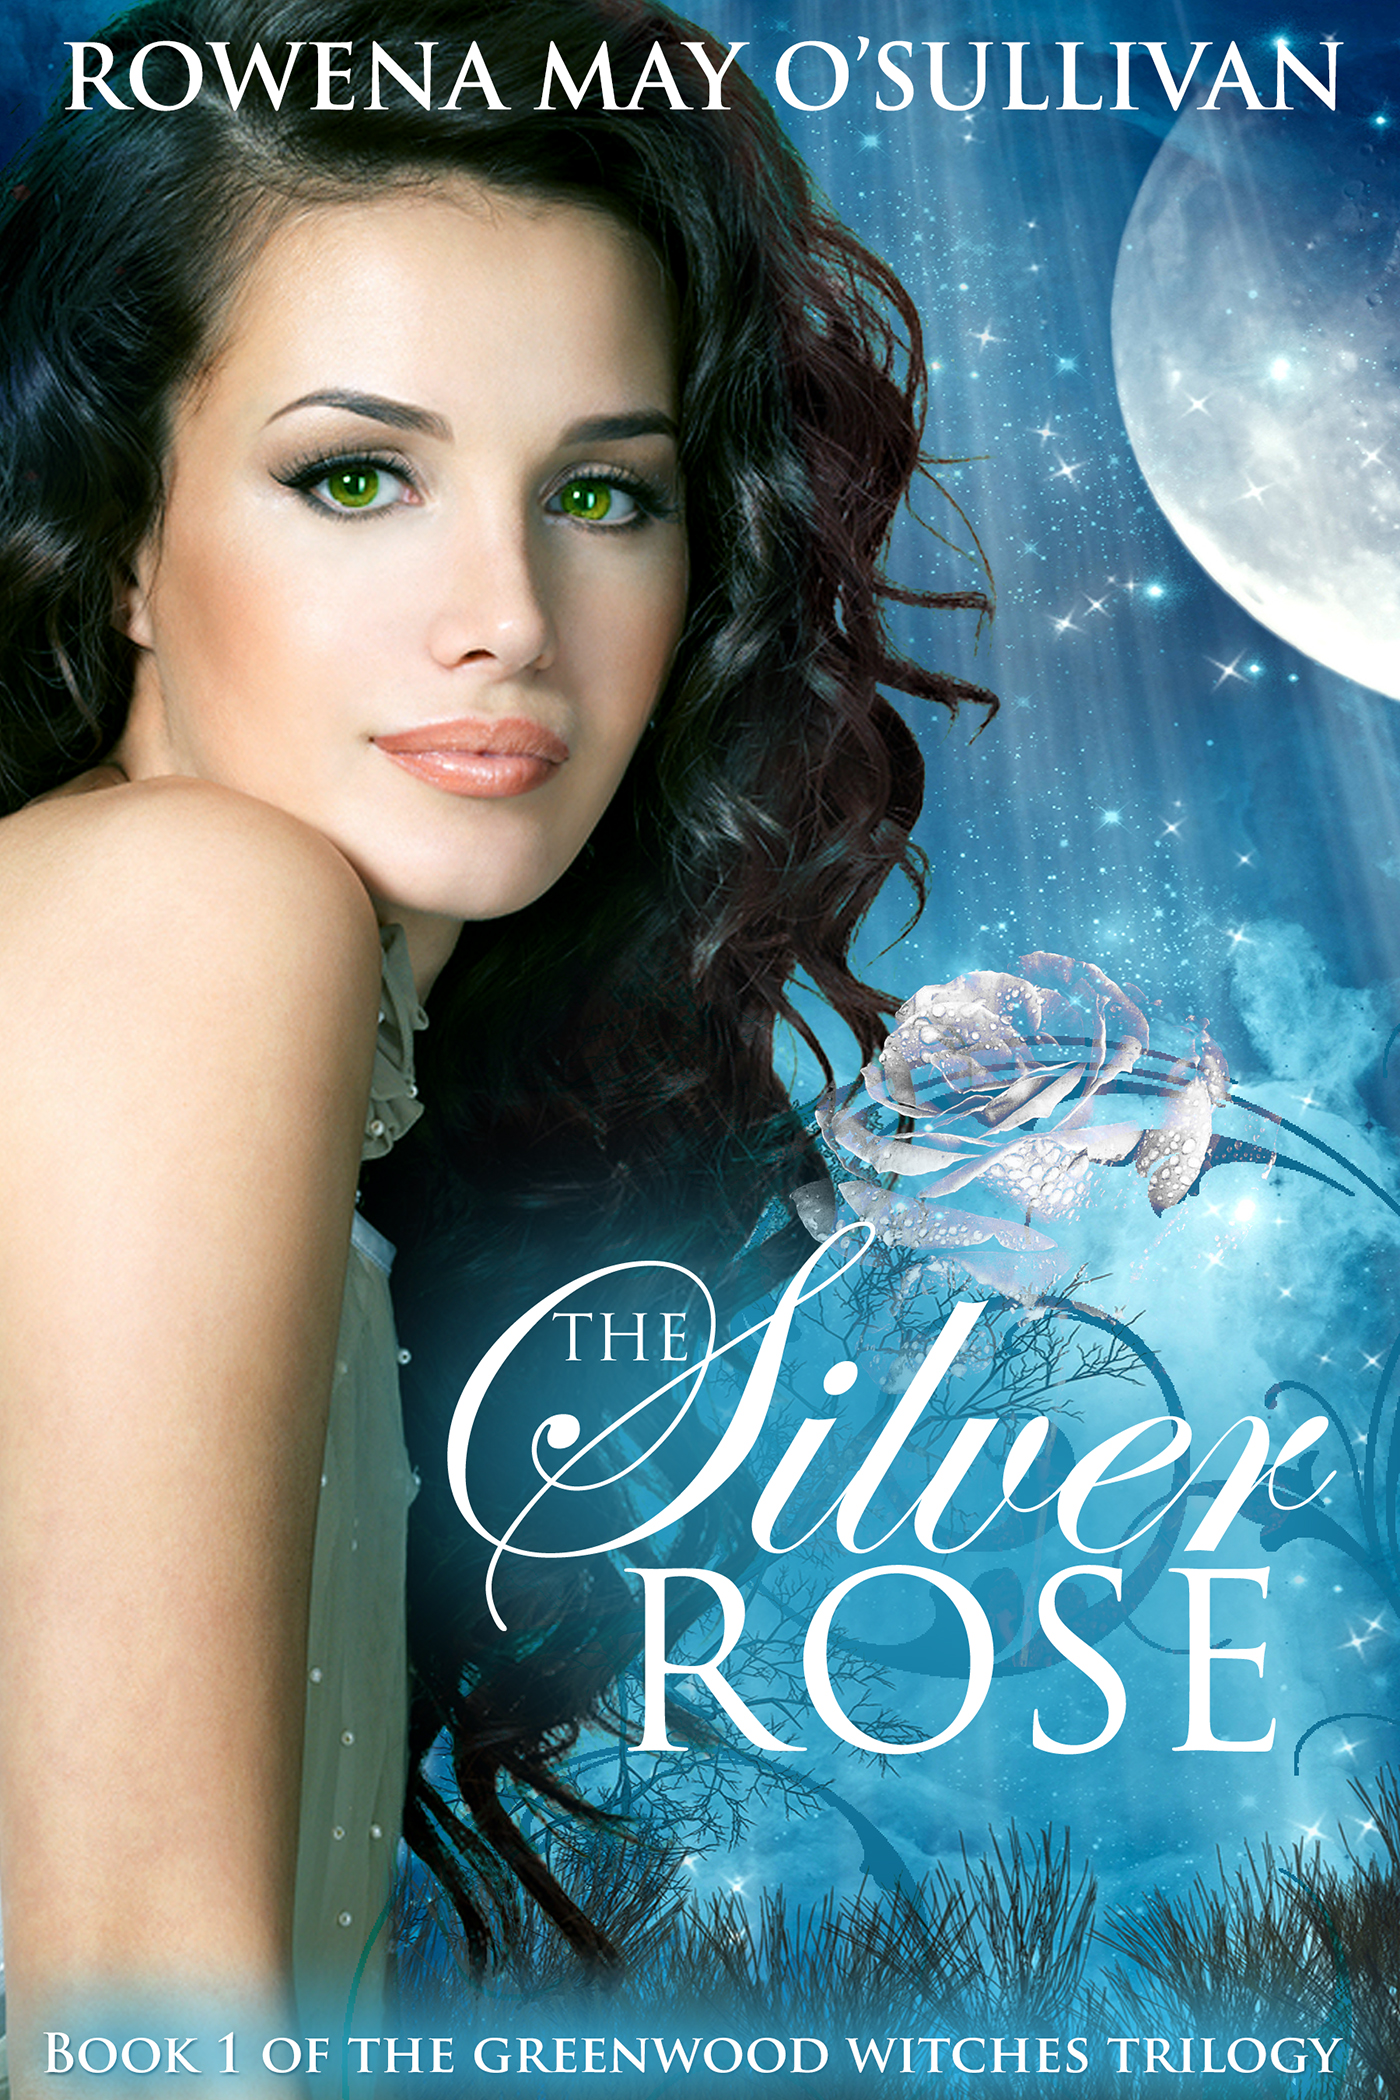 The Silver Rose Book Cover - Author Interview